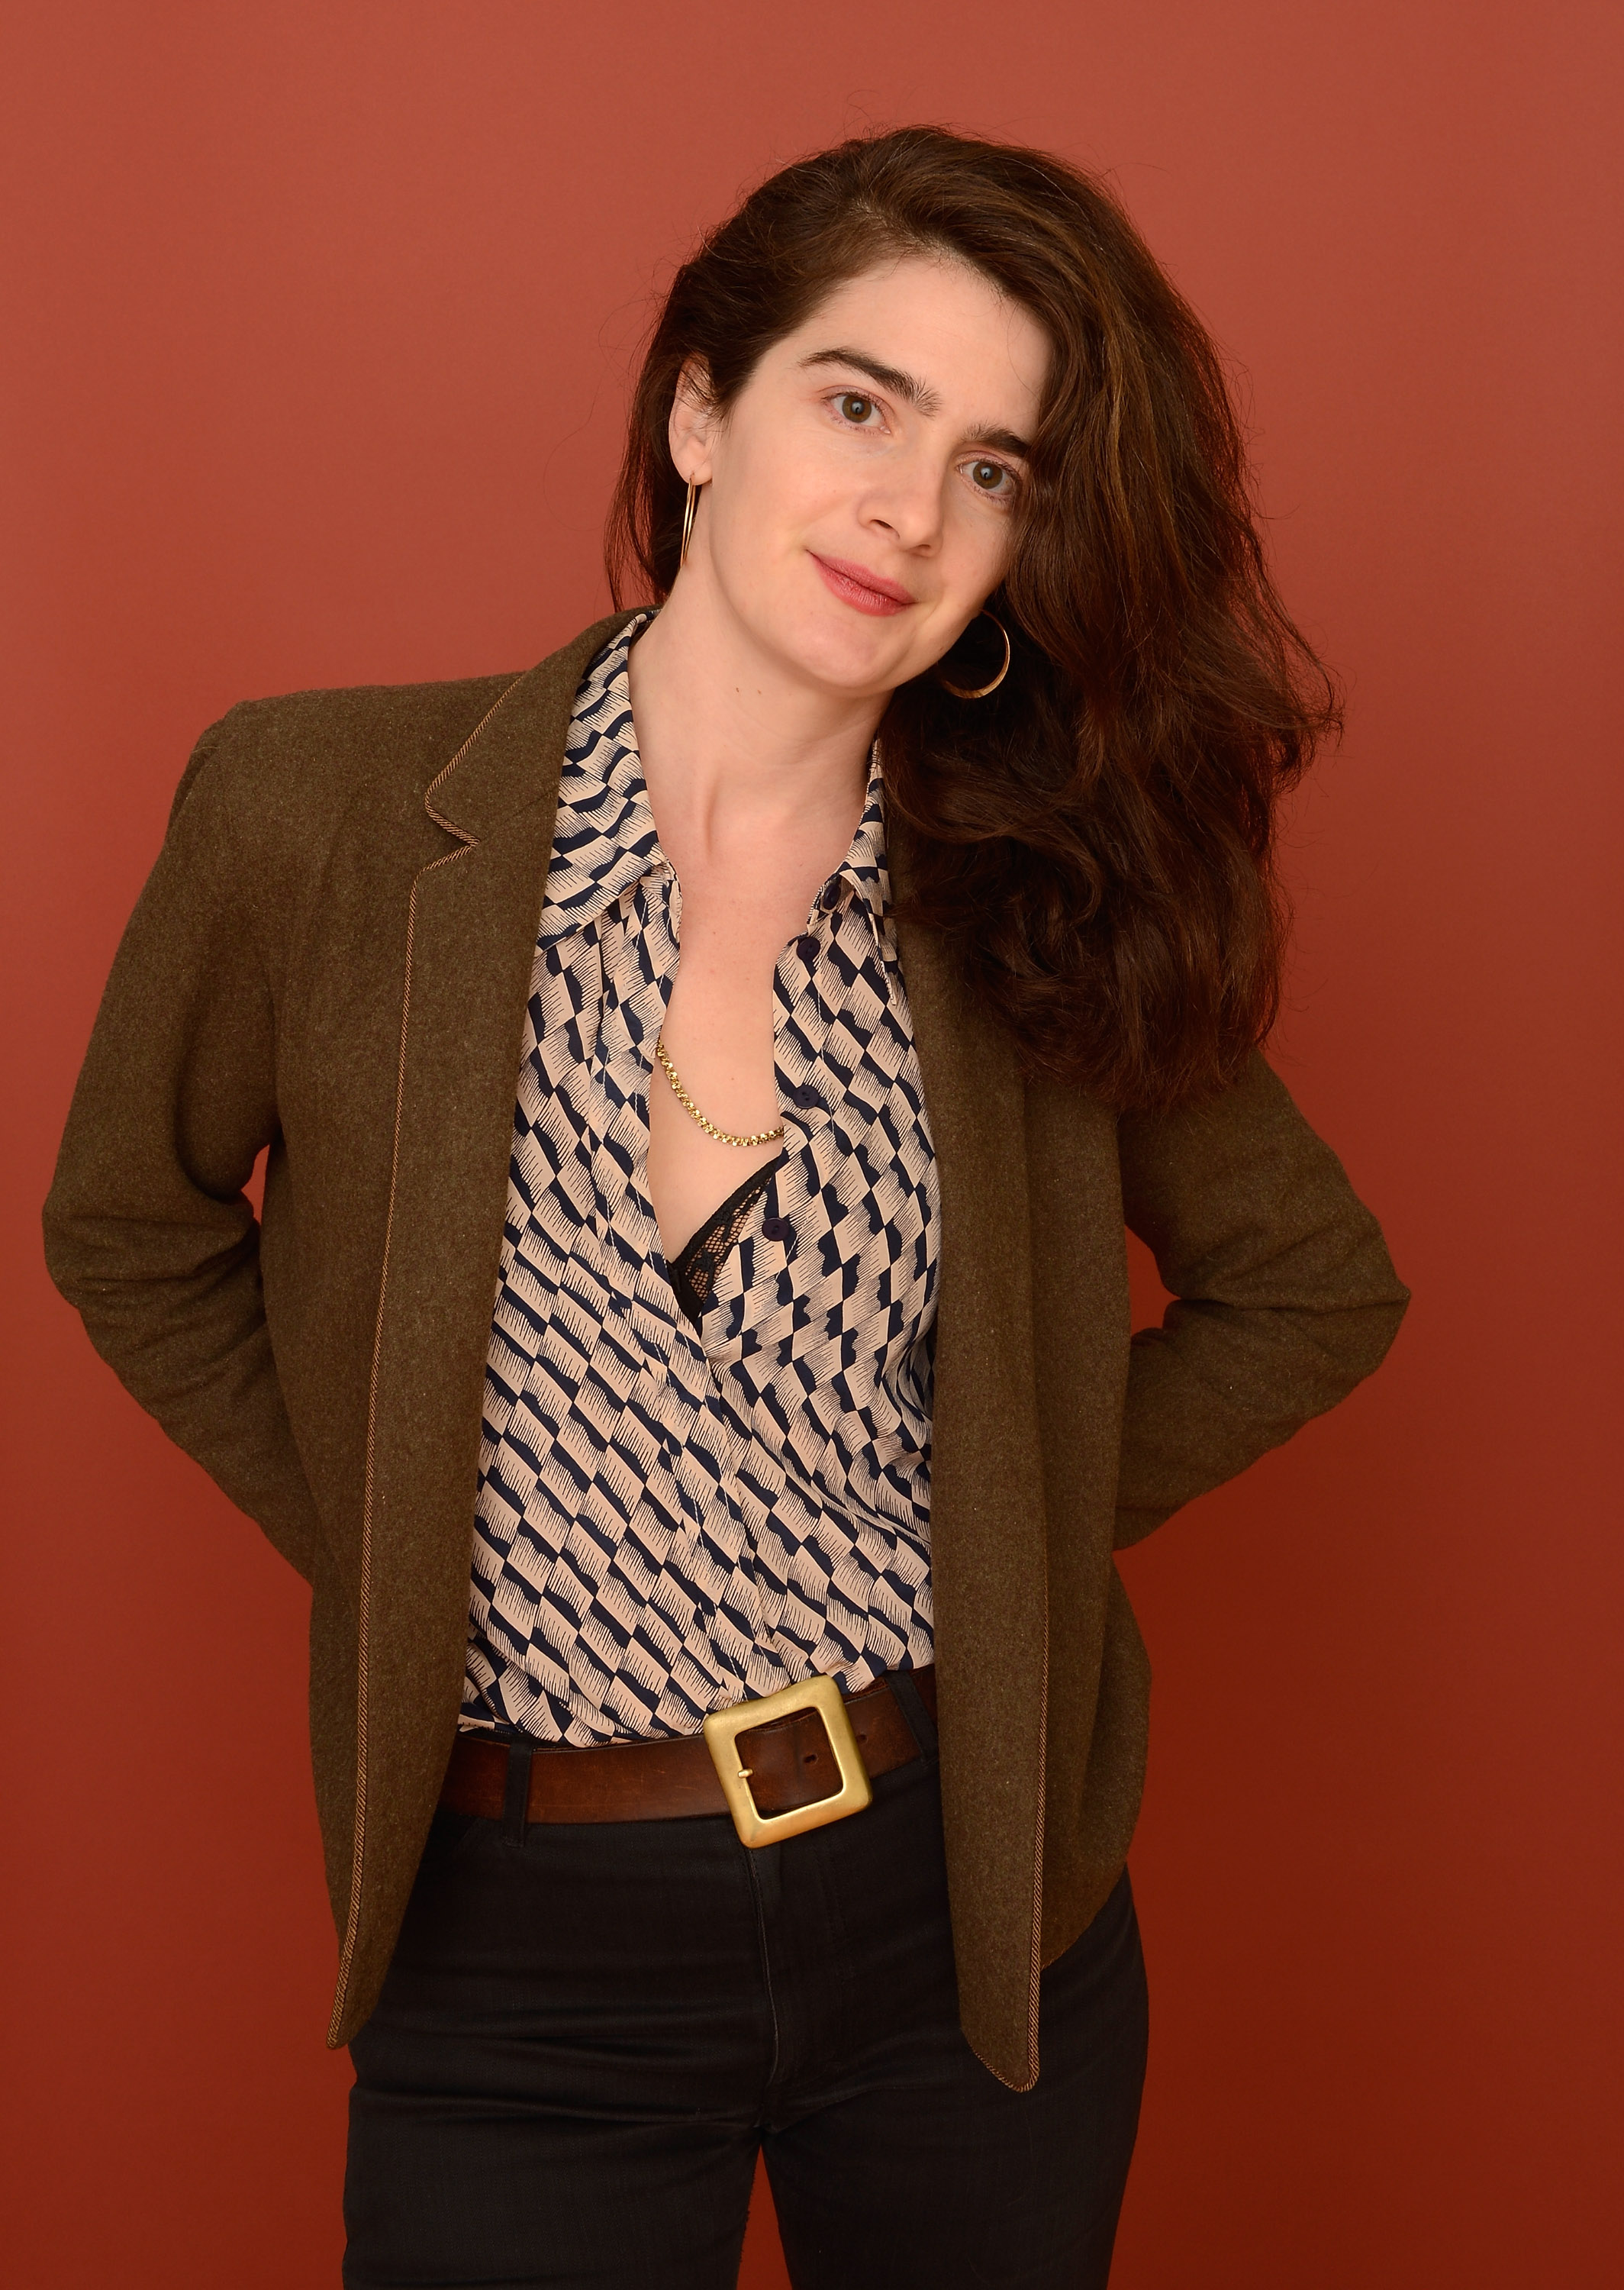 Pictures Gaby Hoffmann nude (78 photos), Pussy, Leaked, Feet, braless 2019